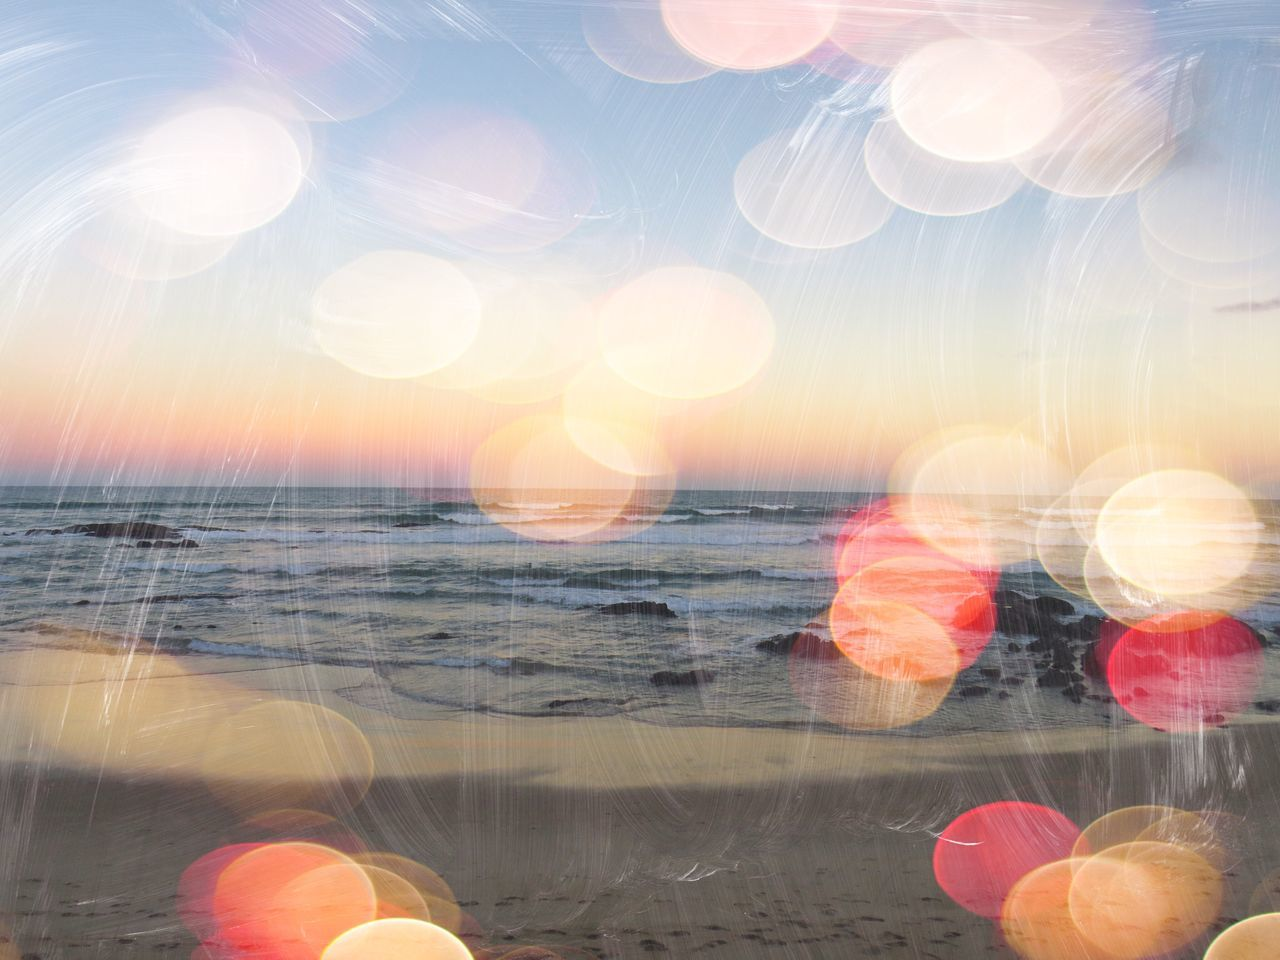 lens flare, sun, sea, sunlight, water, no people, sunset, outdoors, close-up, nature, beauty in nature, sky, day